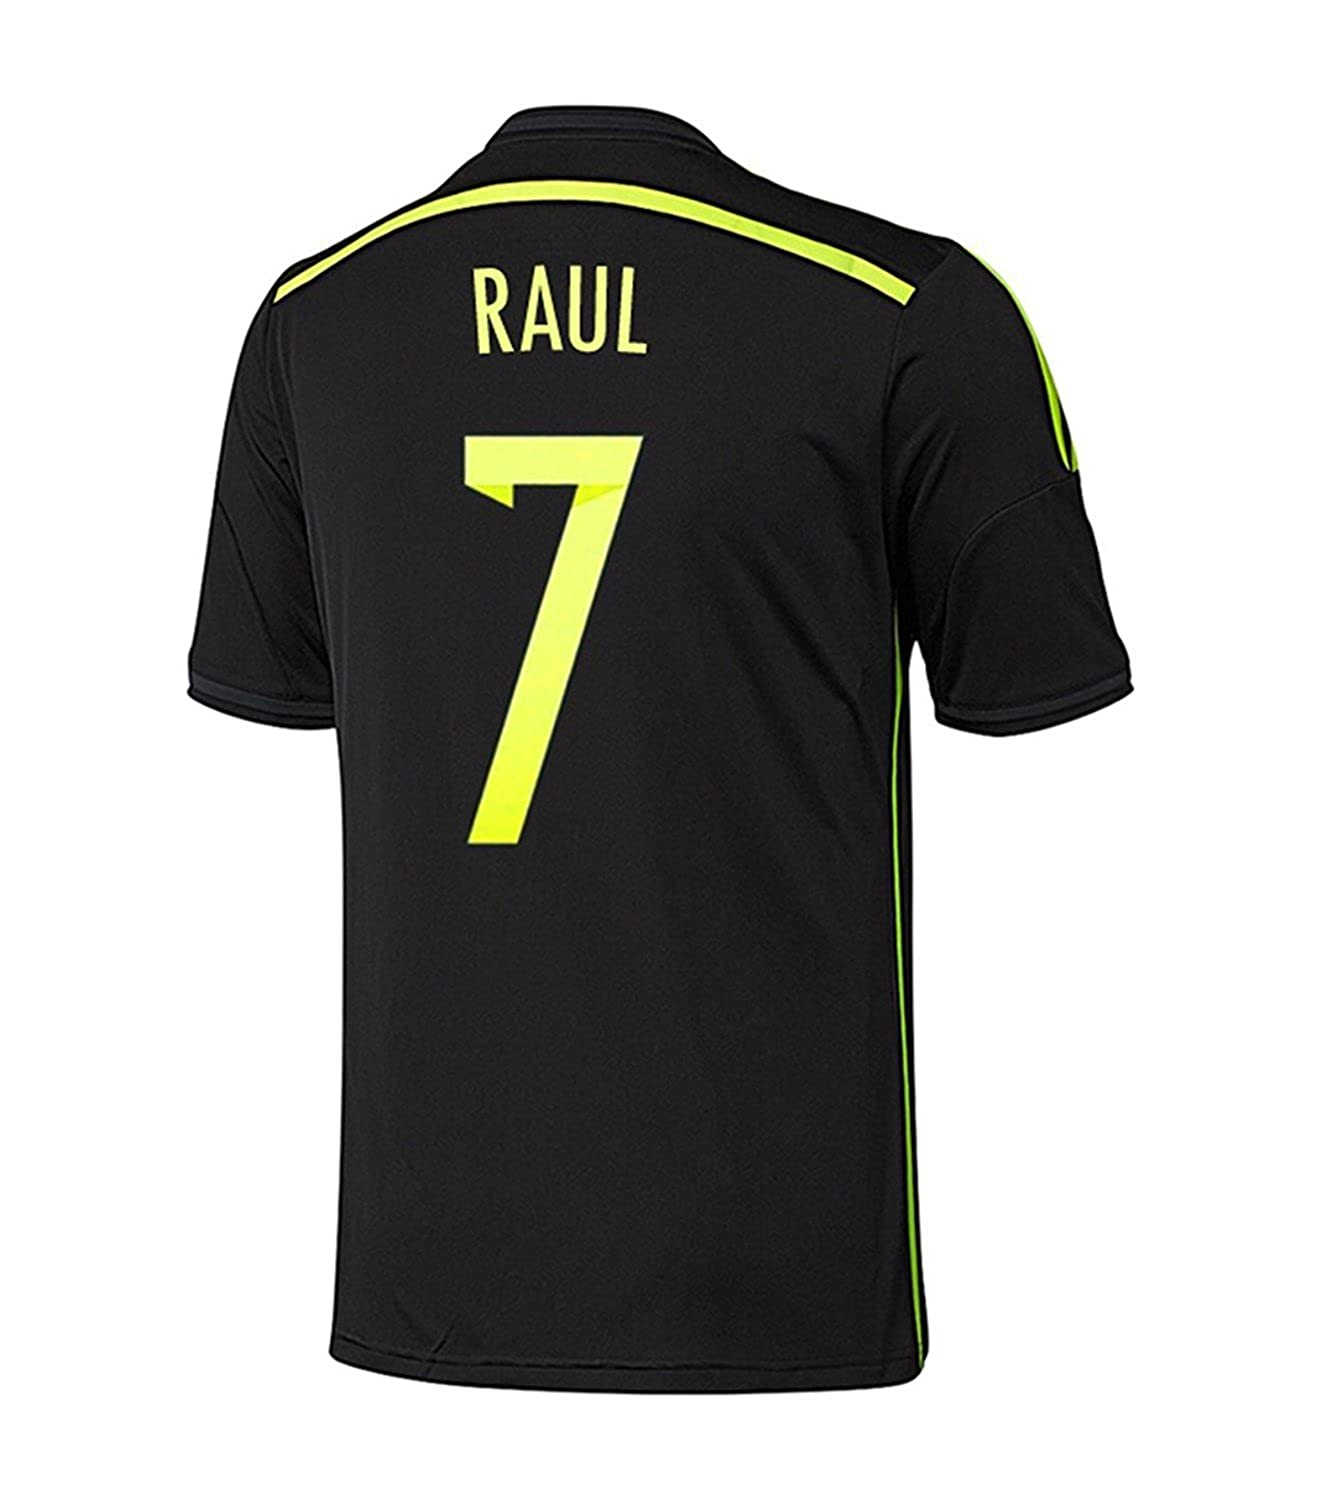 Adidas RAUL # 7 Spain Away Jersey World Cup 2014 B00KYZJE0SLarge